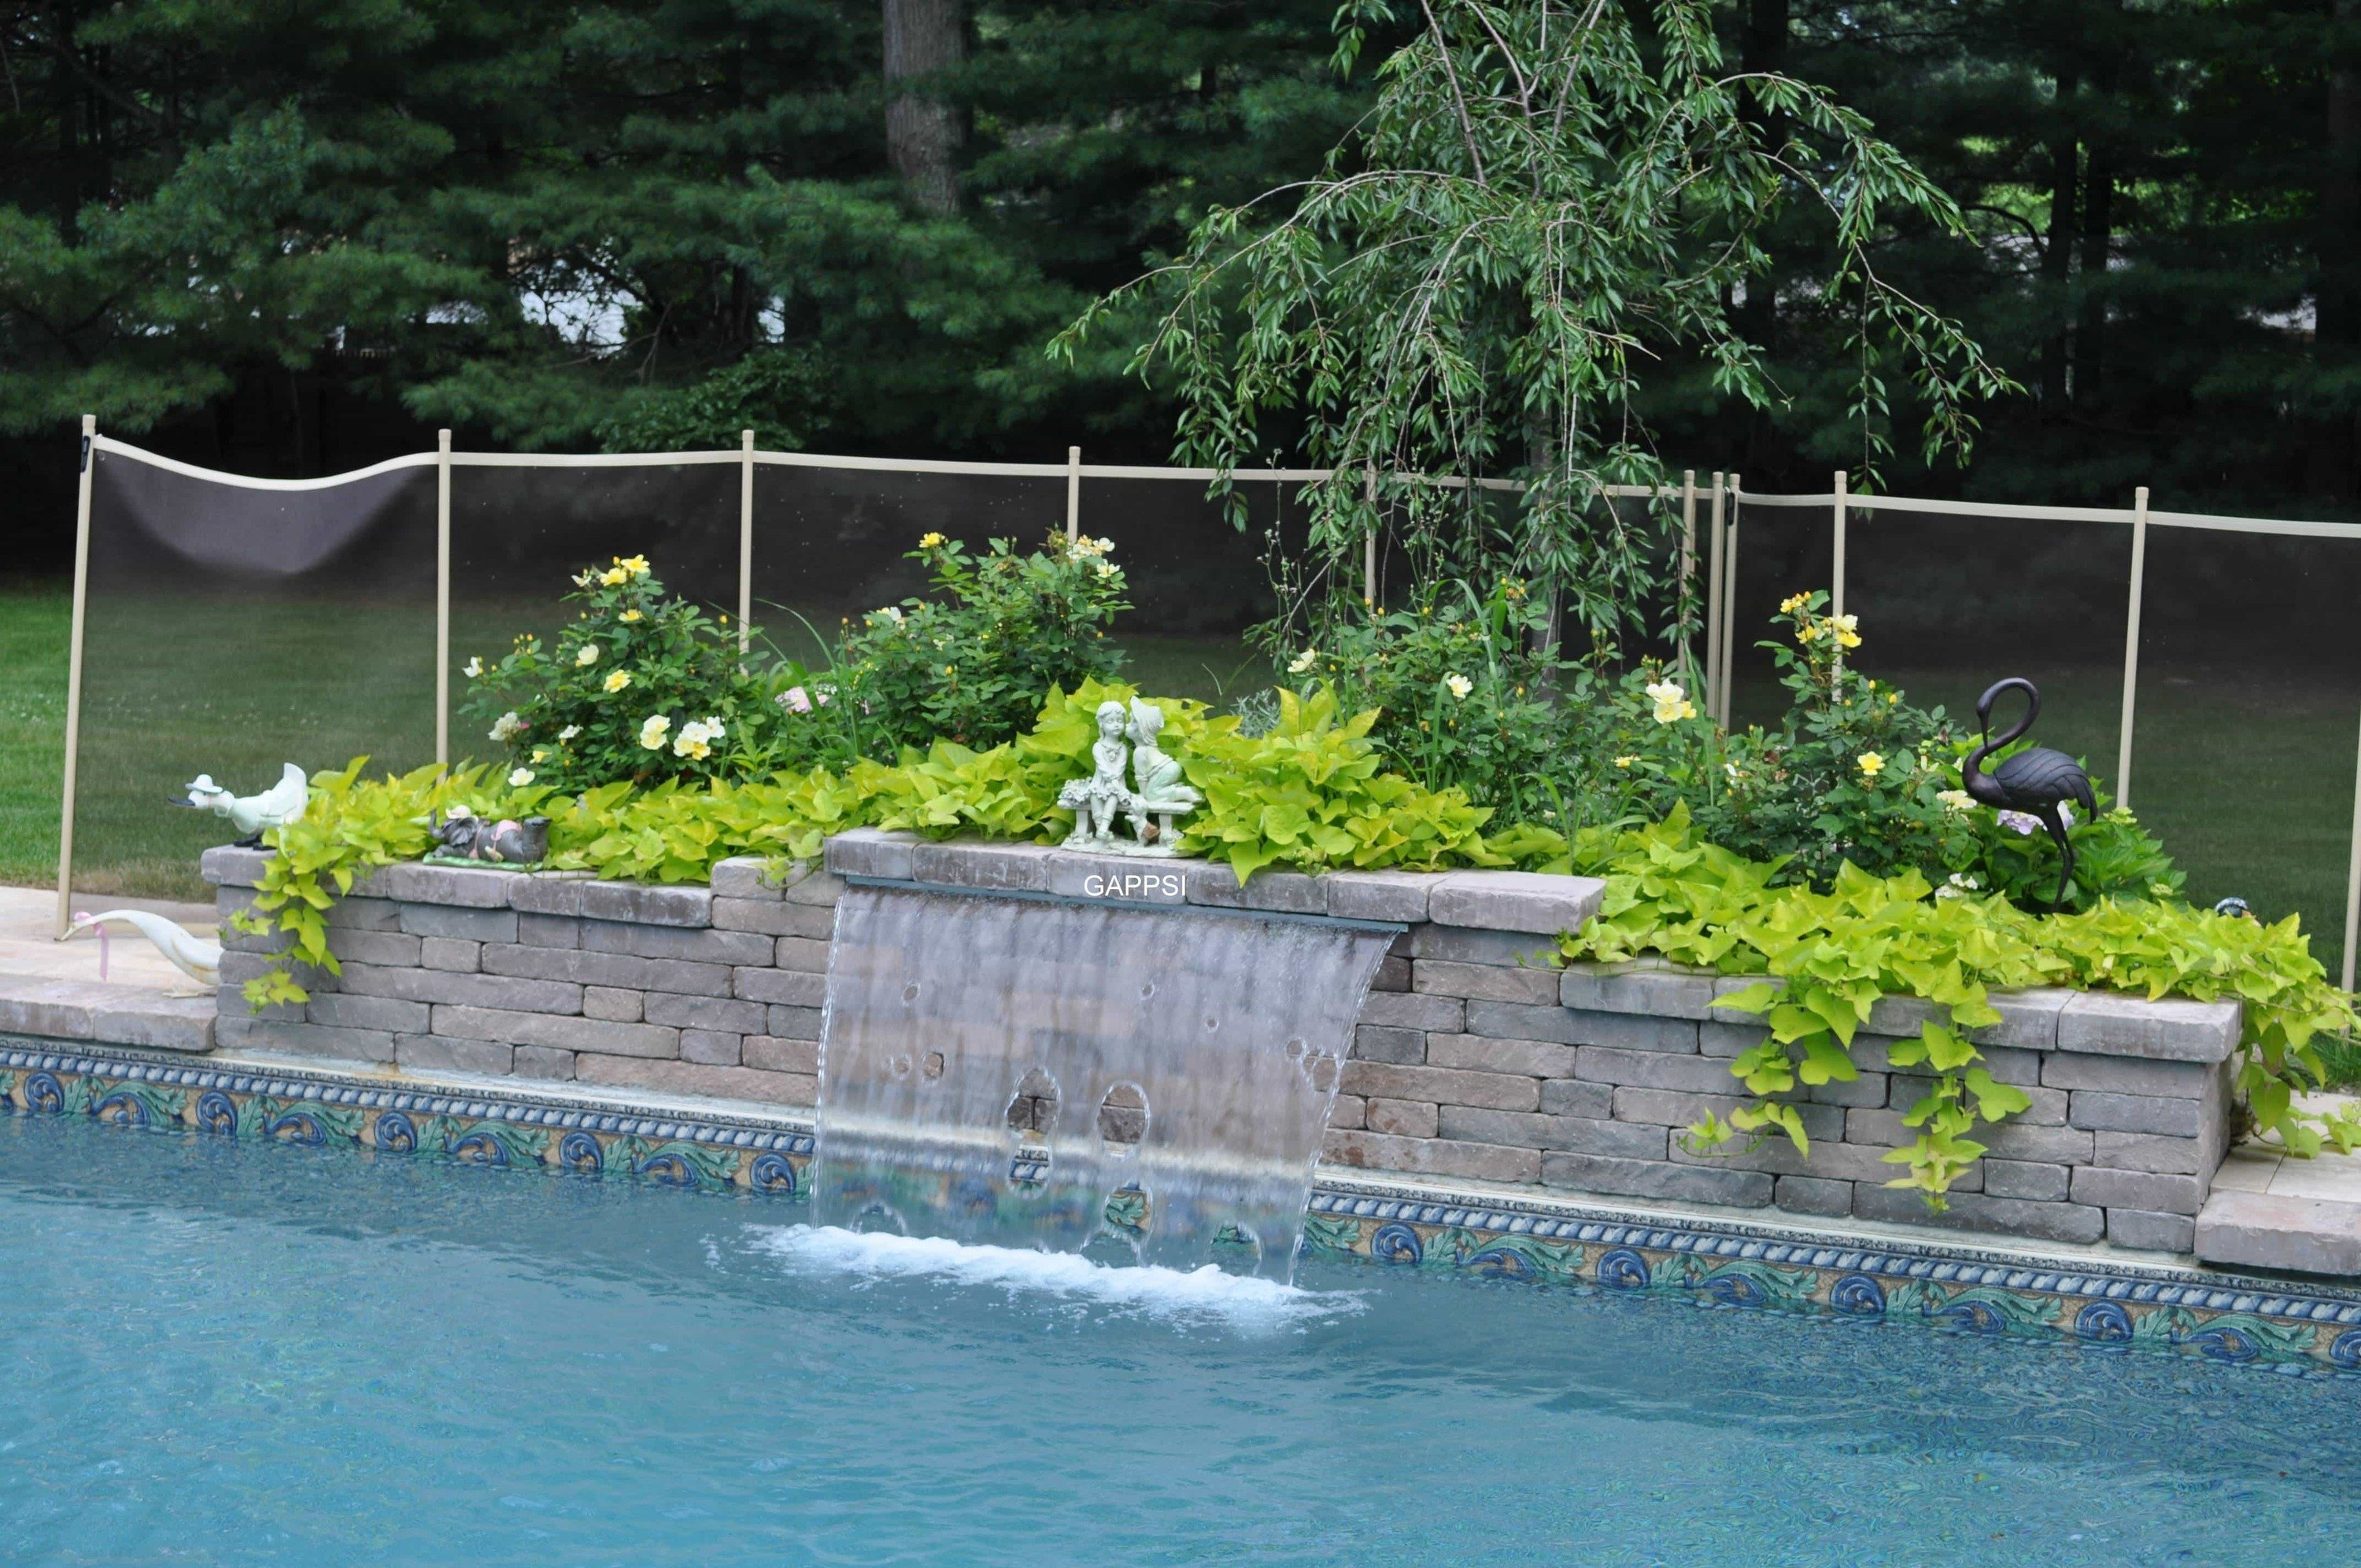 Outdoor Water Features Amp Pool Landscaping Gappsi